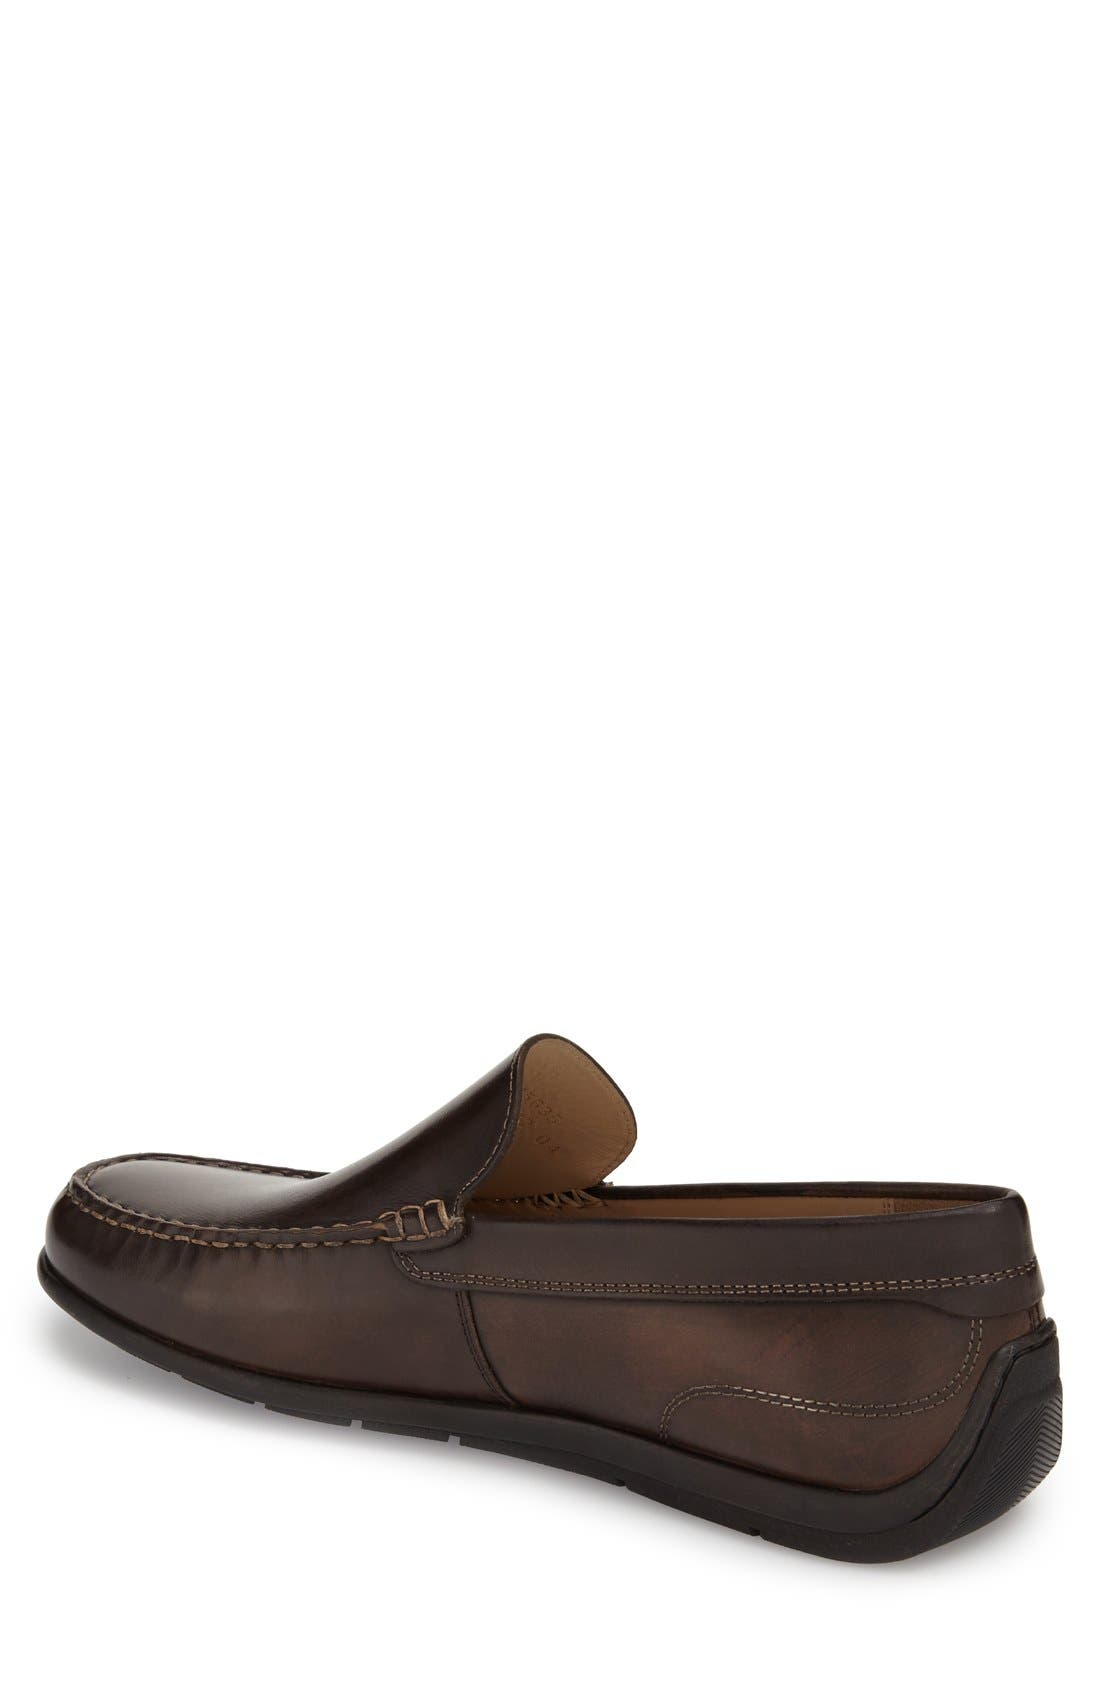 Alternate Image 2  - ECCO 'Classic Moc II' Venetian Loafer (Men)